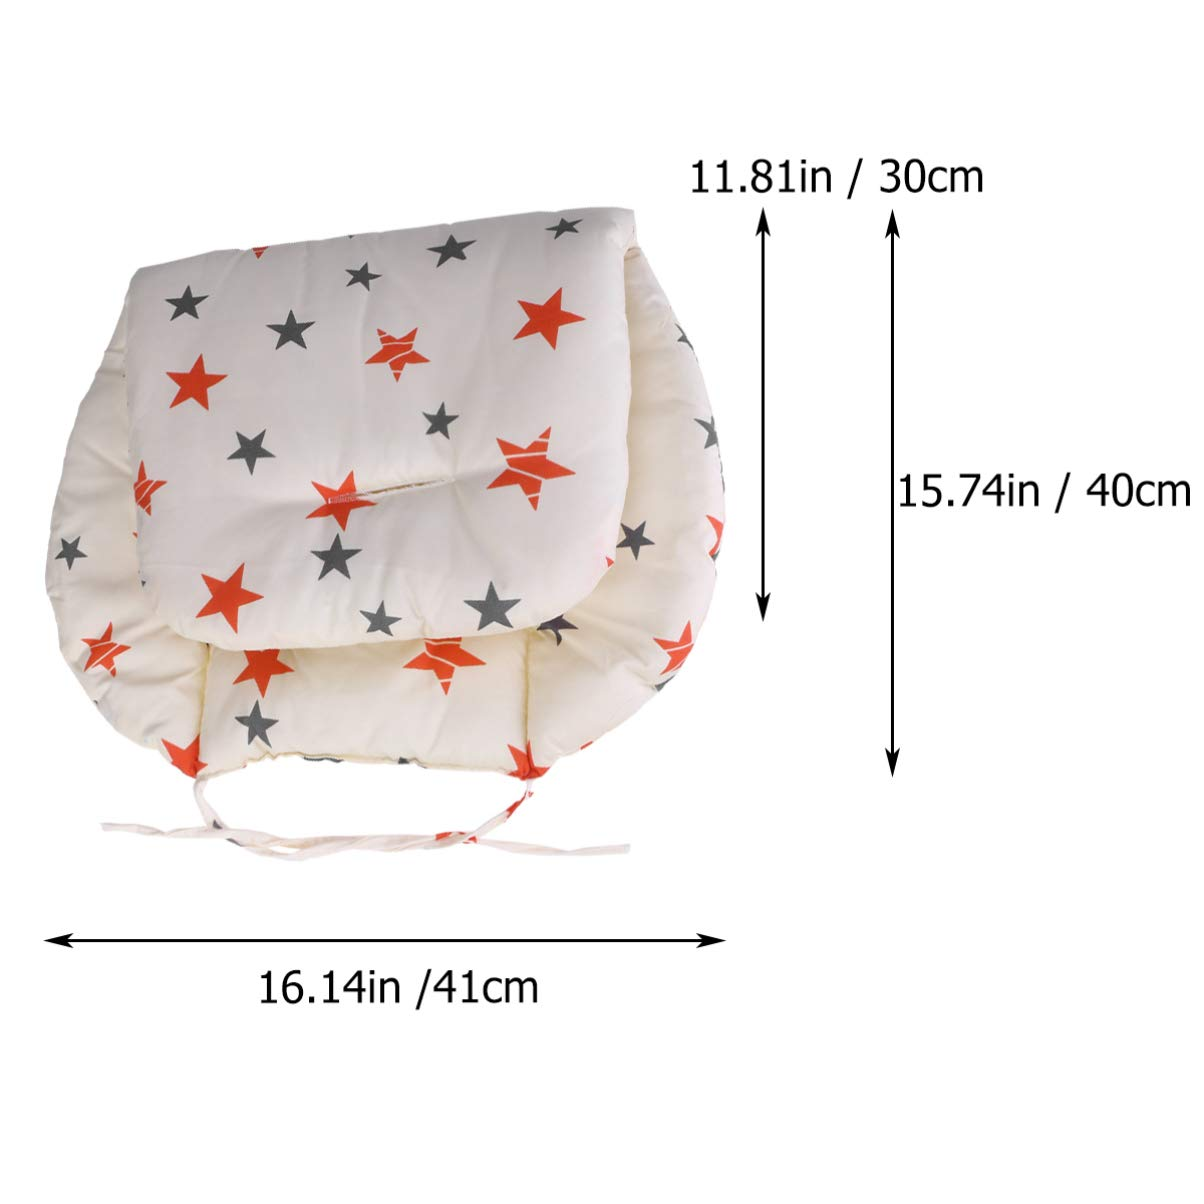 HEALLILY Baby Stroller Car High Chair Seat Cushion Breathable Stroller Liner Mat Pad Cover Protector Five-Pointed Star